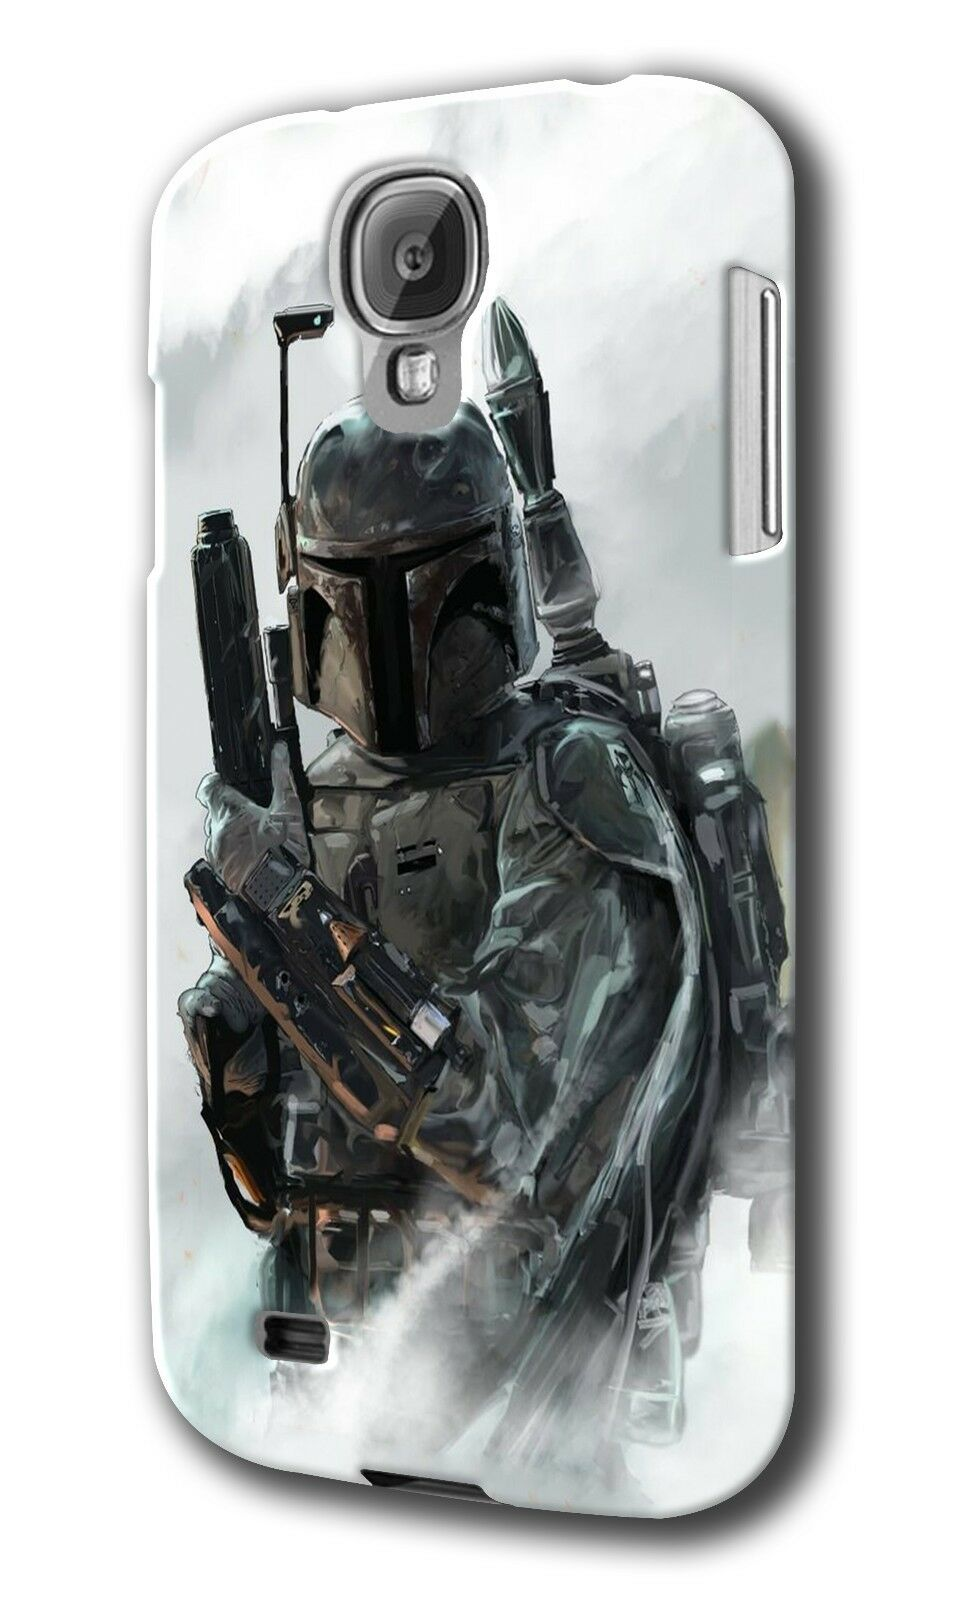 Star Wars Boba Fett Samsung Galaxy S4 5 6 7 8 9 10 E Edge Note Plus Case 150